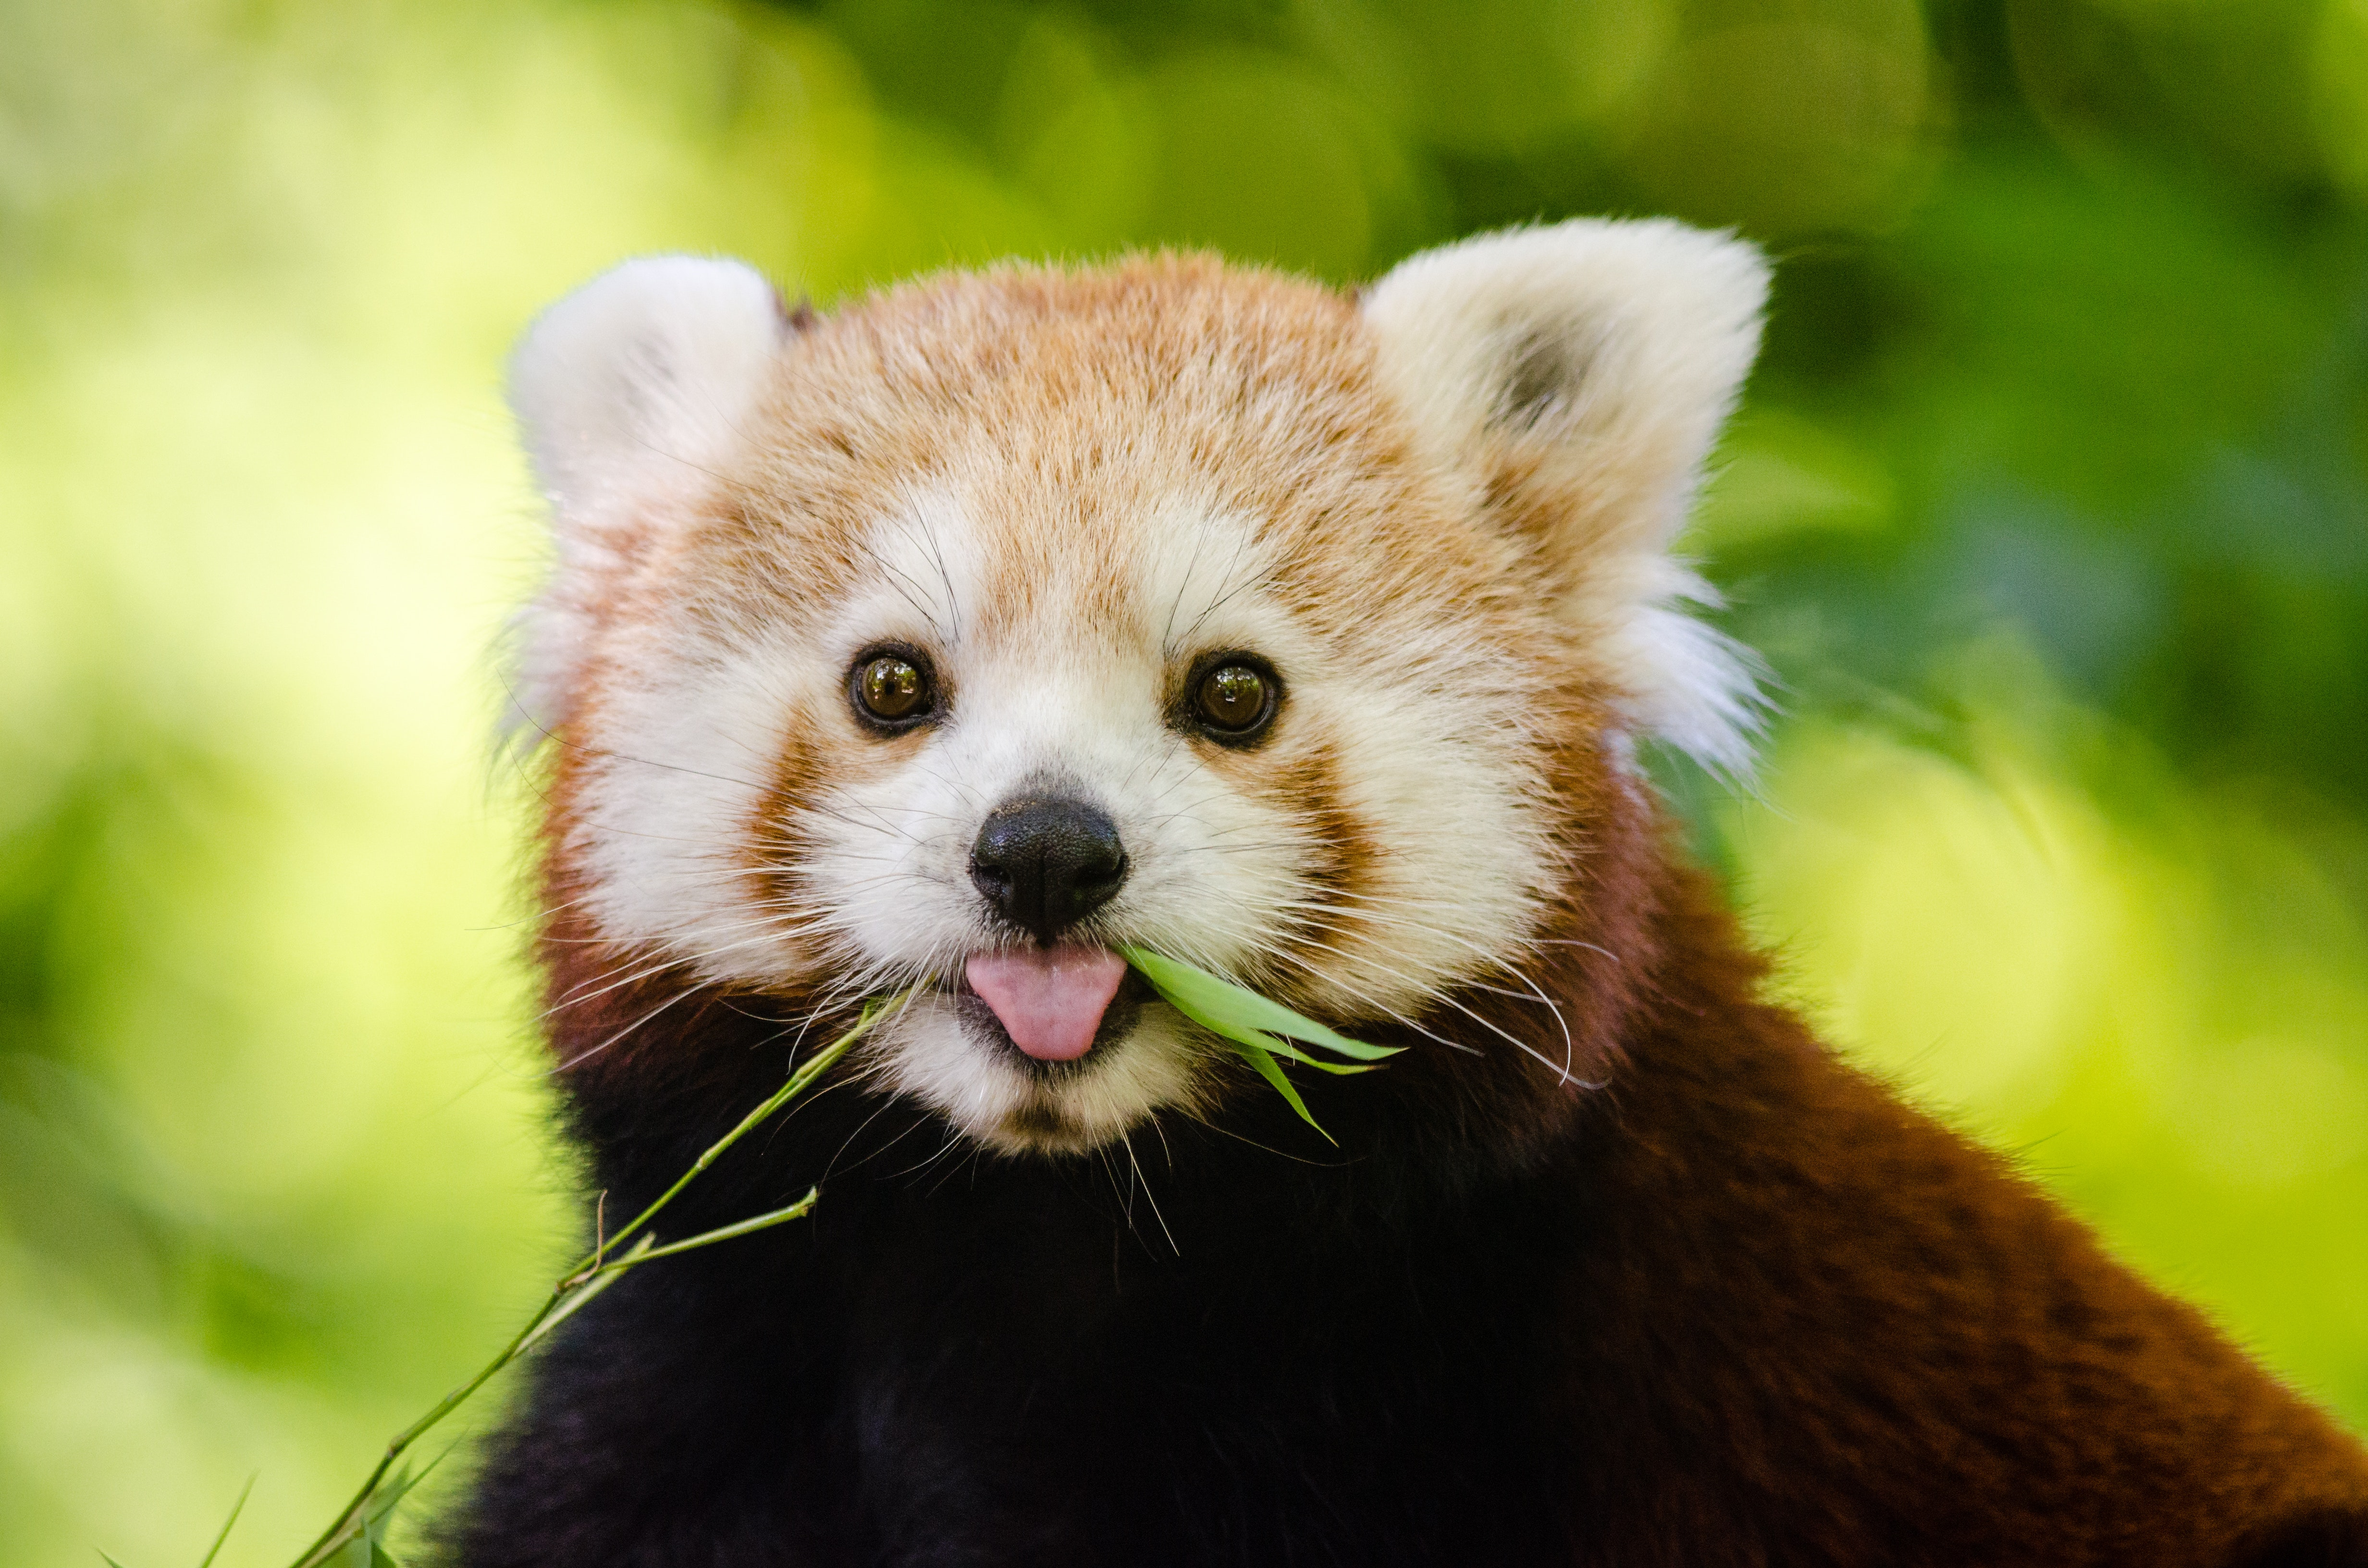 Brown and White Grizzly Bear, Red panda, Wildlife, Furry, Close-up, HQ Photo